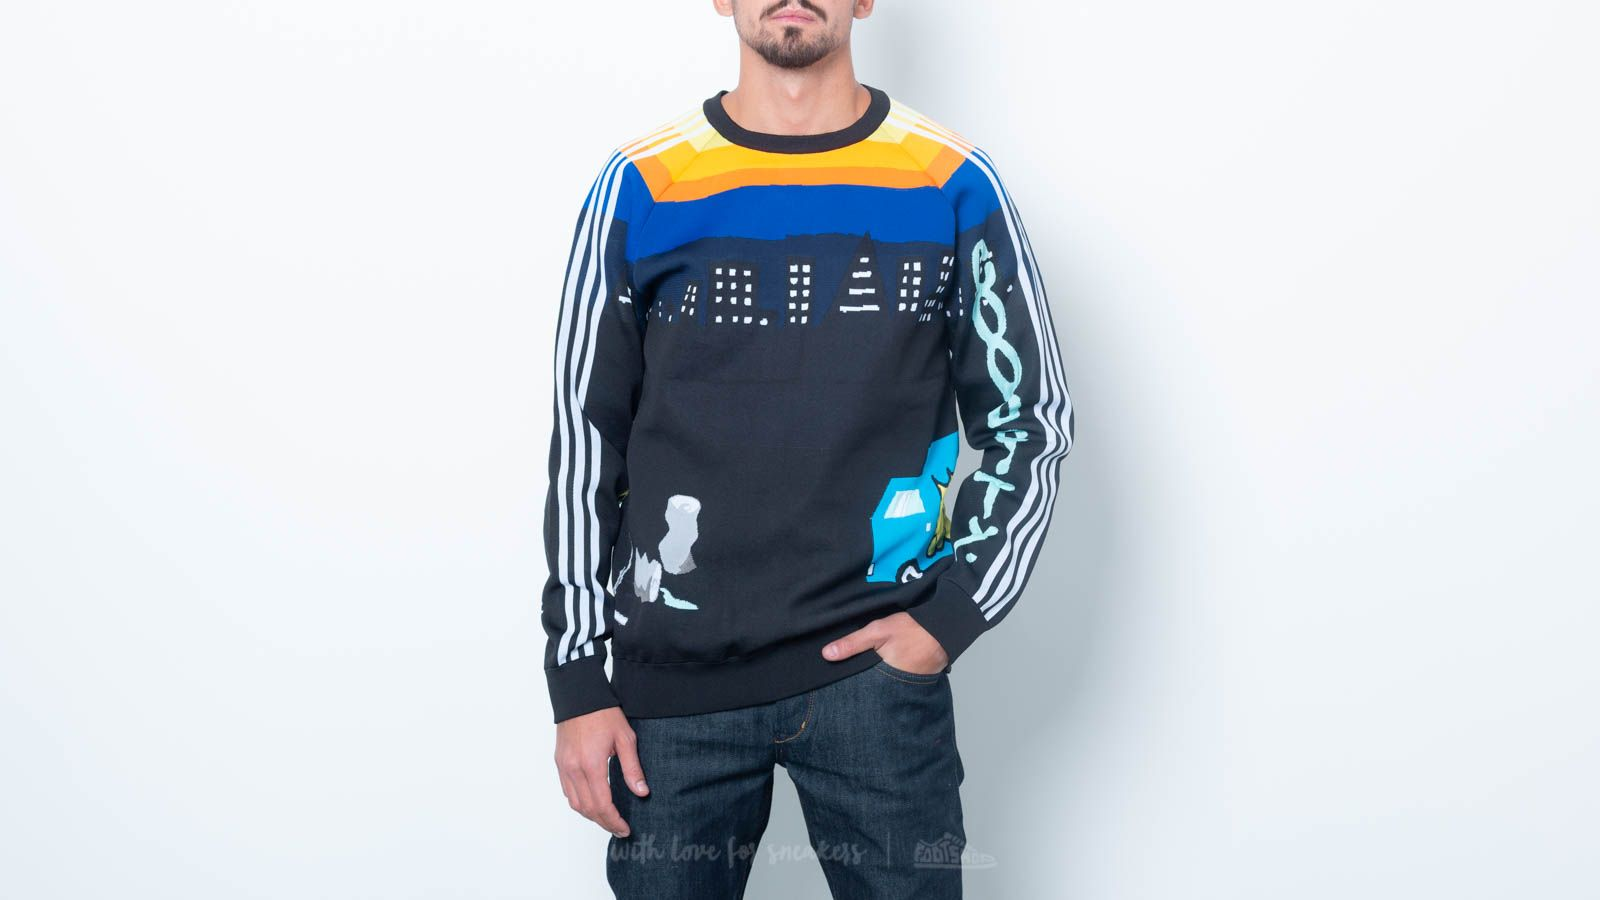 Sweatshirts adidas x United Arrows & Sons Knit Tops Crewneck Black